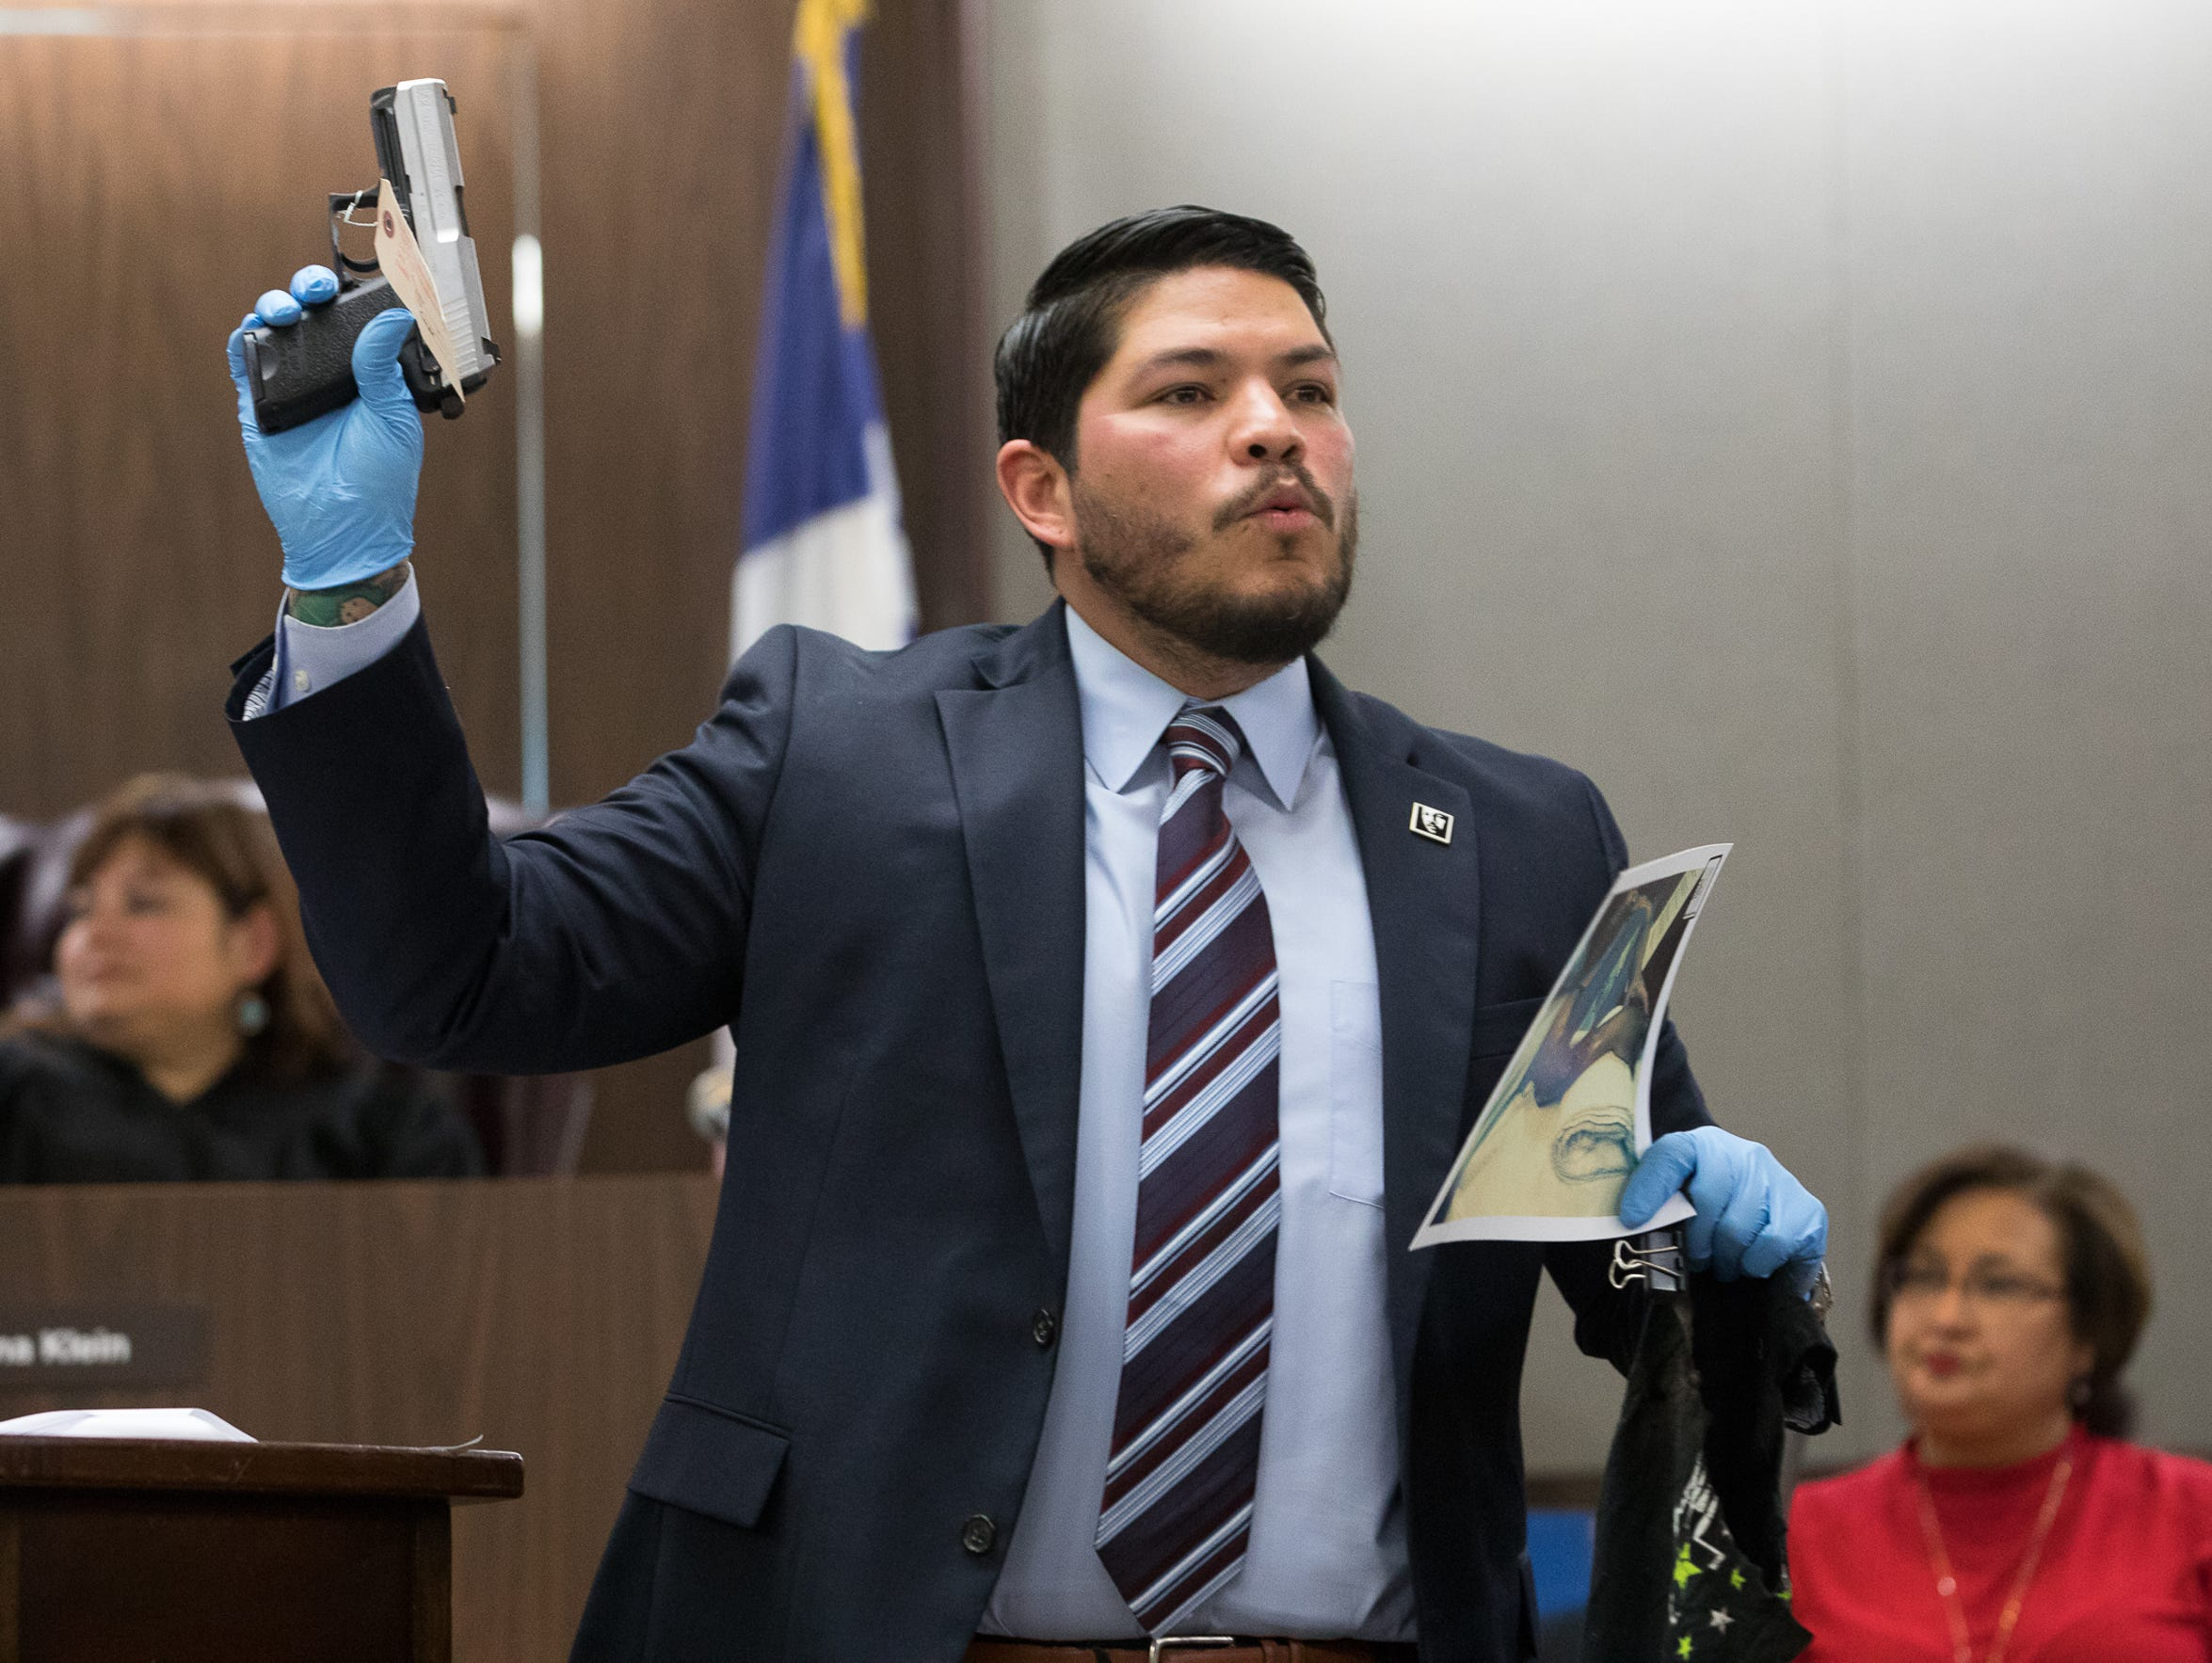 District Attorney Mark Gonzalez holds up a gun as he